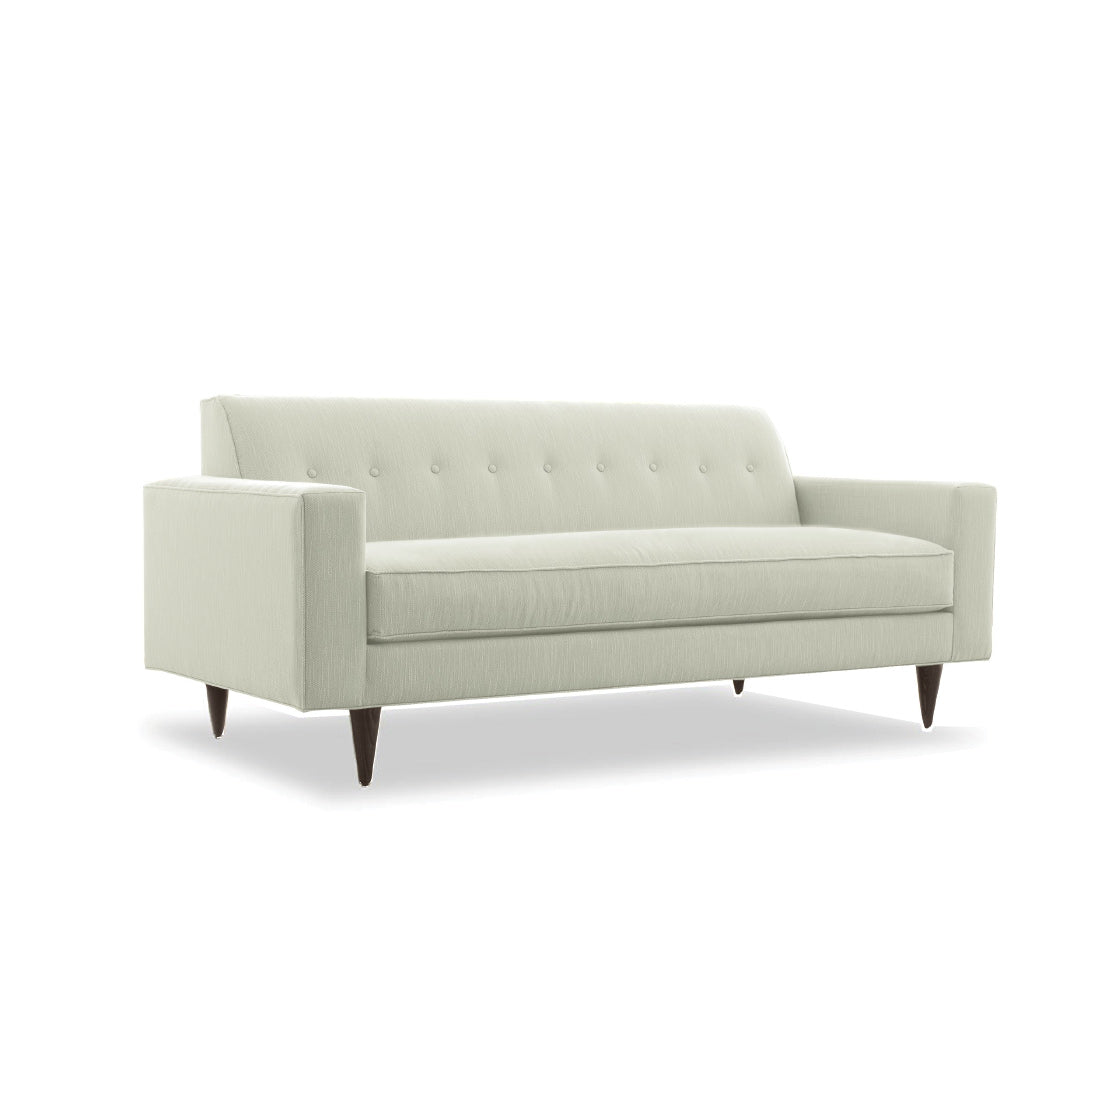 "Michael 75"" Apartment Sofa - Orla Ivory"